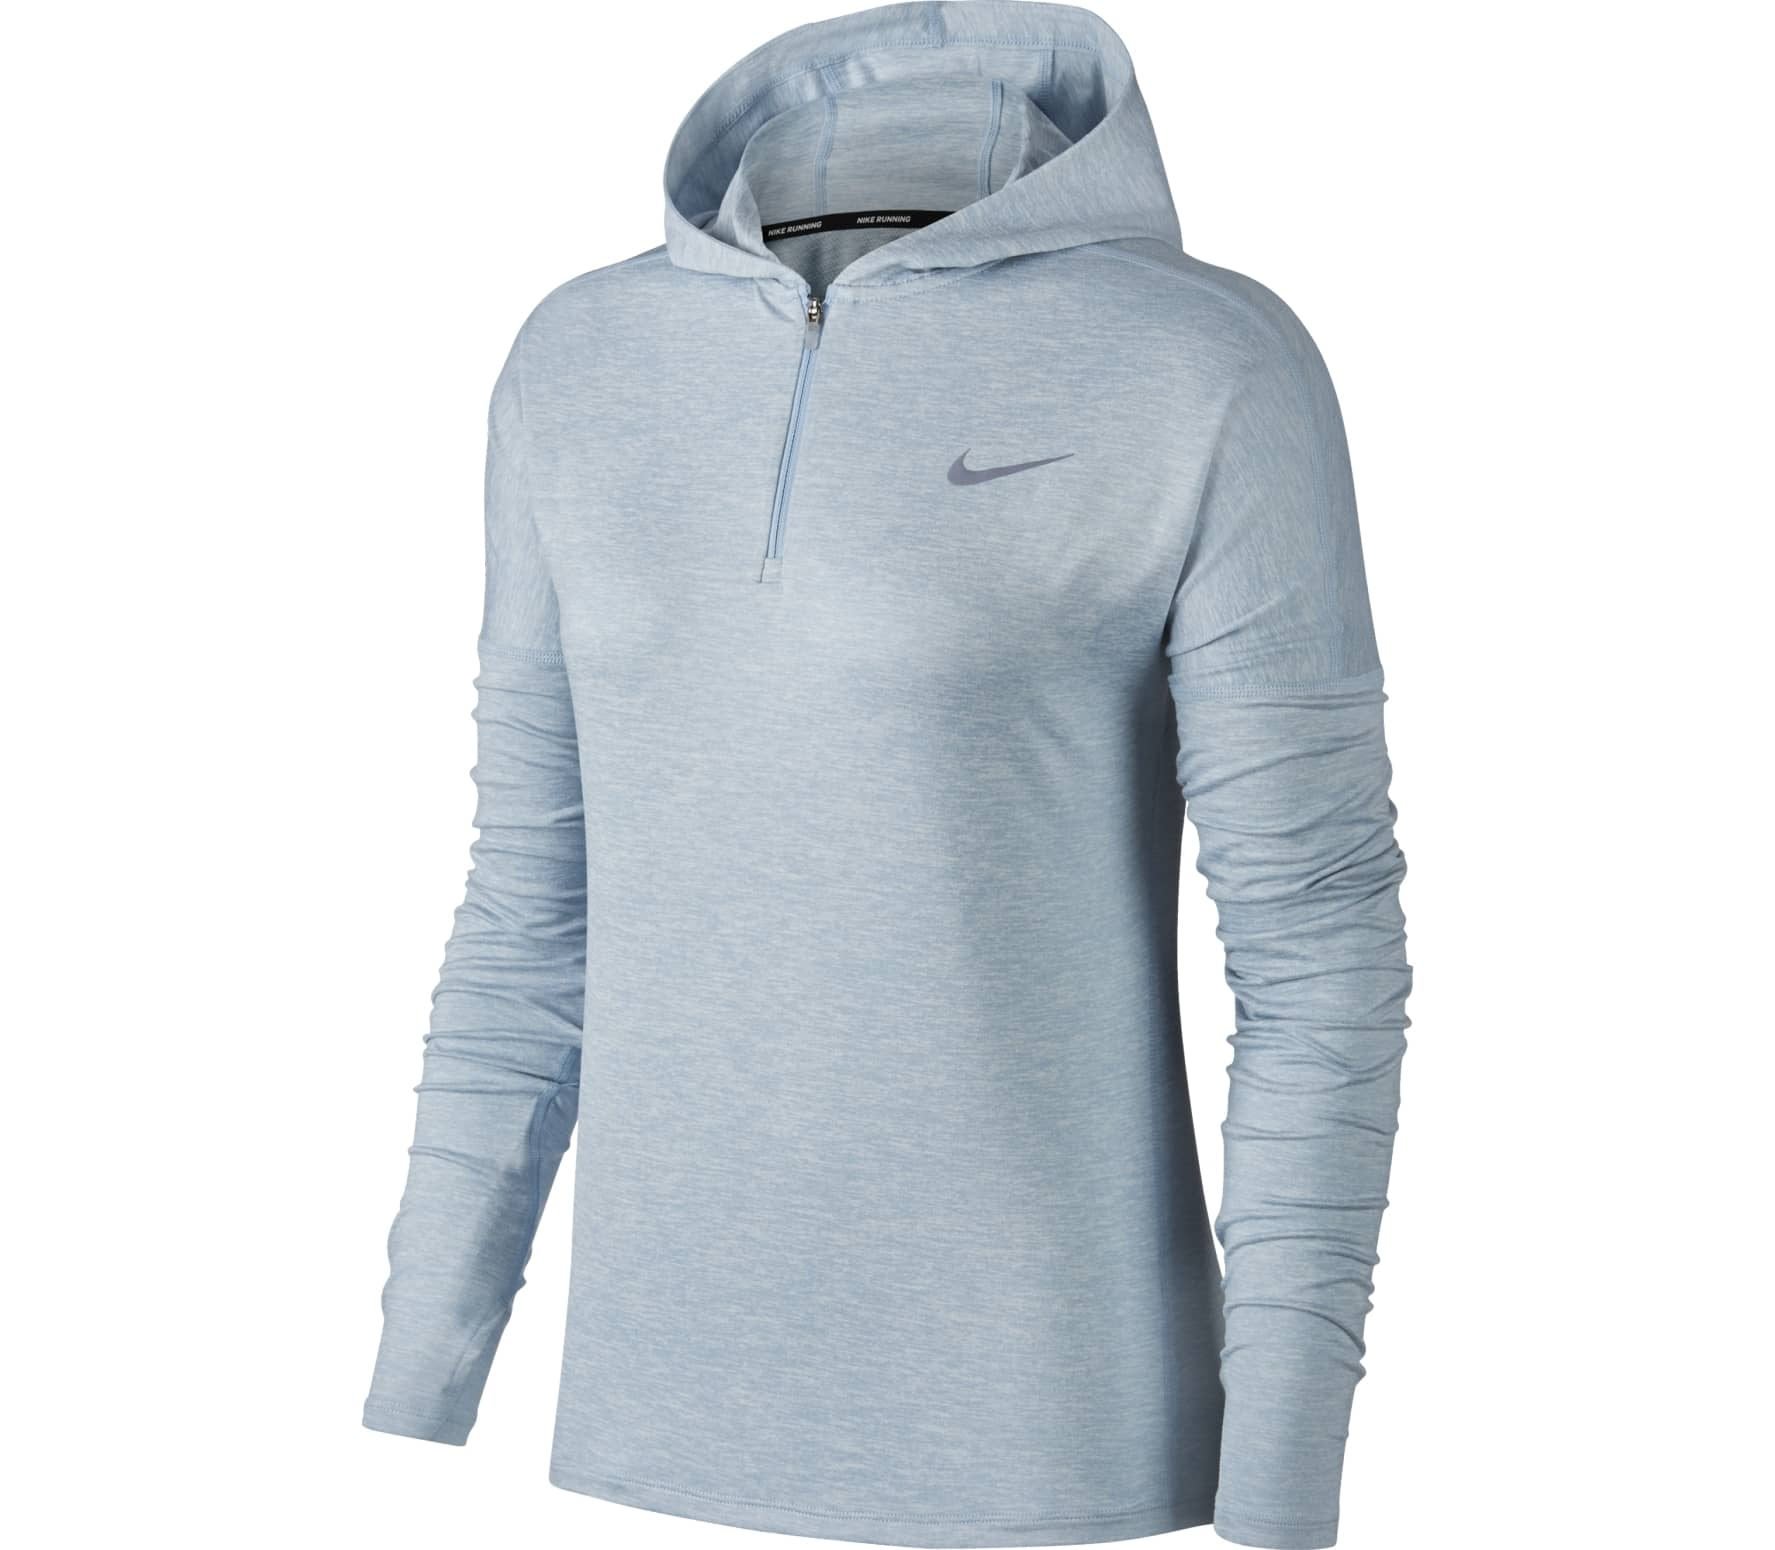 c0fc2c4438e3 Nike - Dry Element women s running hoodie (light blue) - buy it at ...